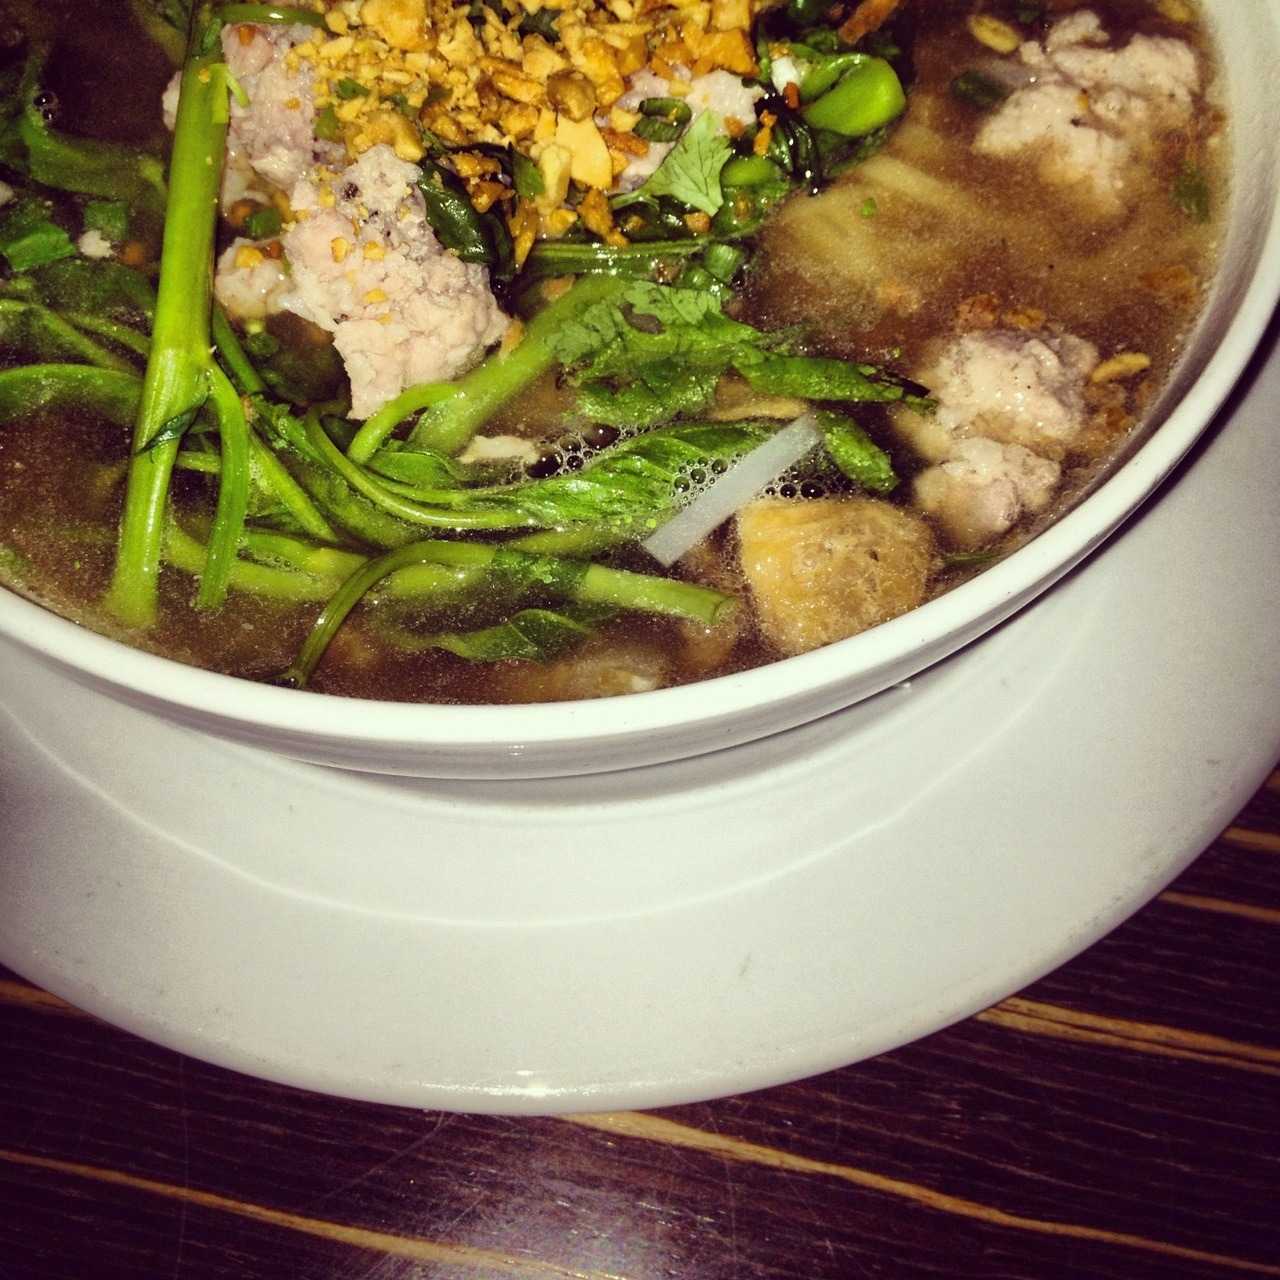 Porky soup - pork meatballs, crispy pork slices, some greens, rice noodles and peanuts in a somewhat lightly flavored broth. It was ok, not awesome. At Thai House,